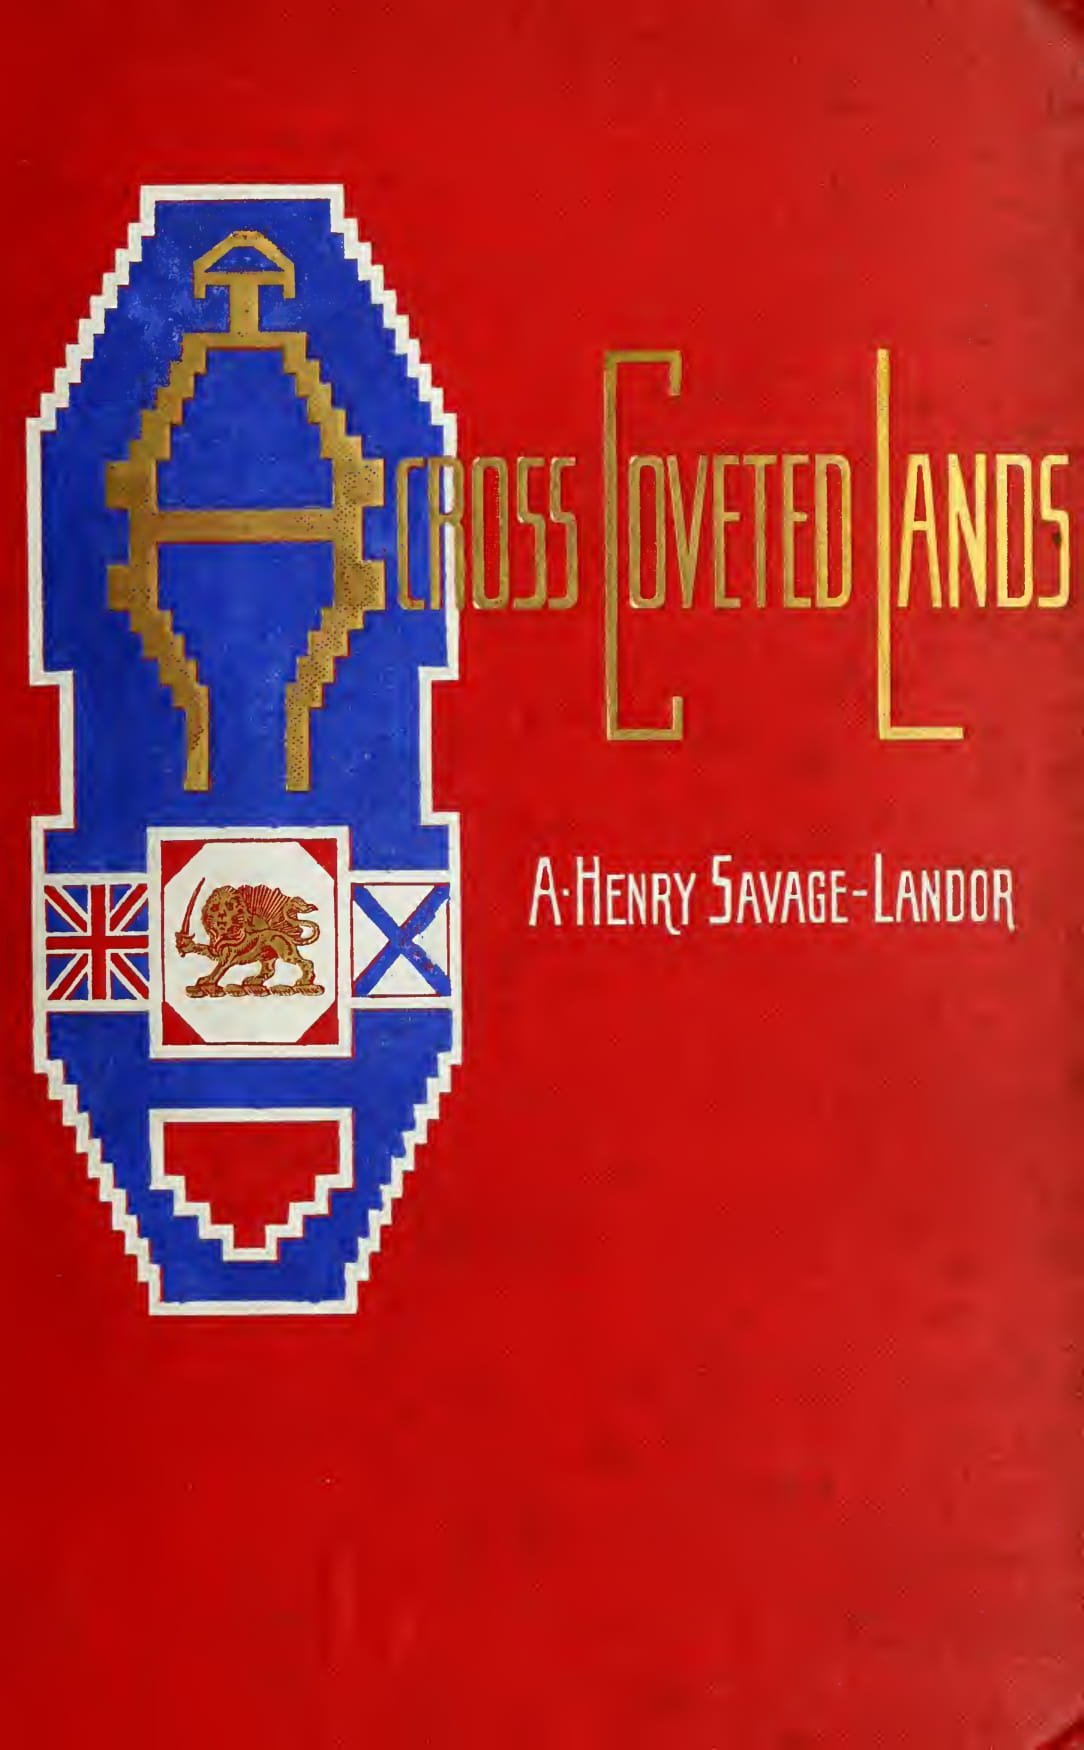 California Digital Library - Across Coveted Lands Vol. 2